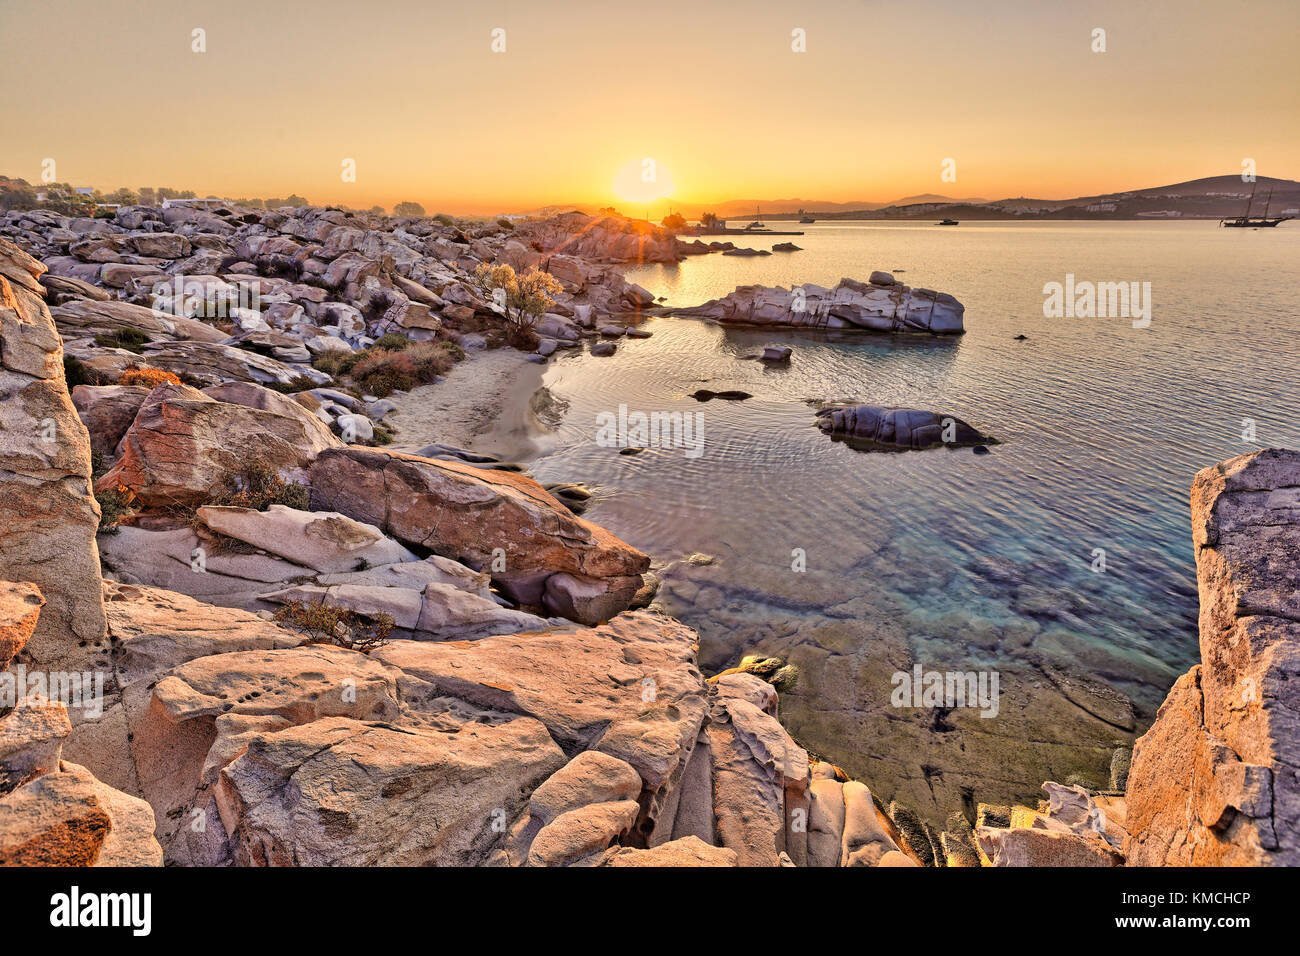 The sunrise in Kolymbithres beach of Paros island, Greece - Stock Image